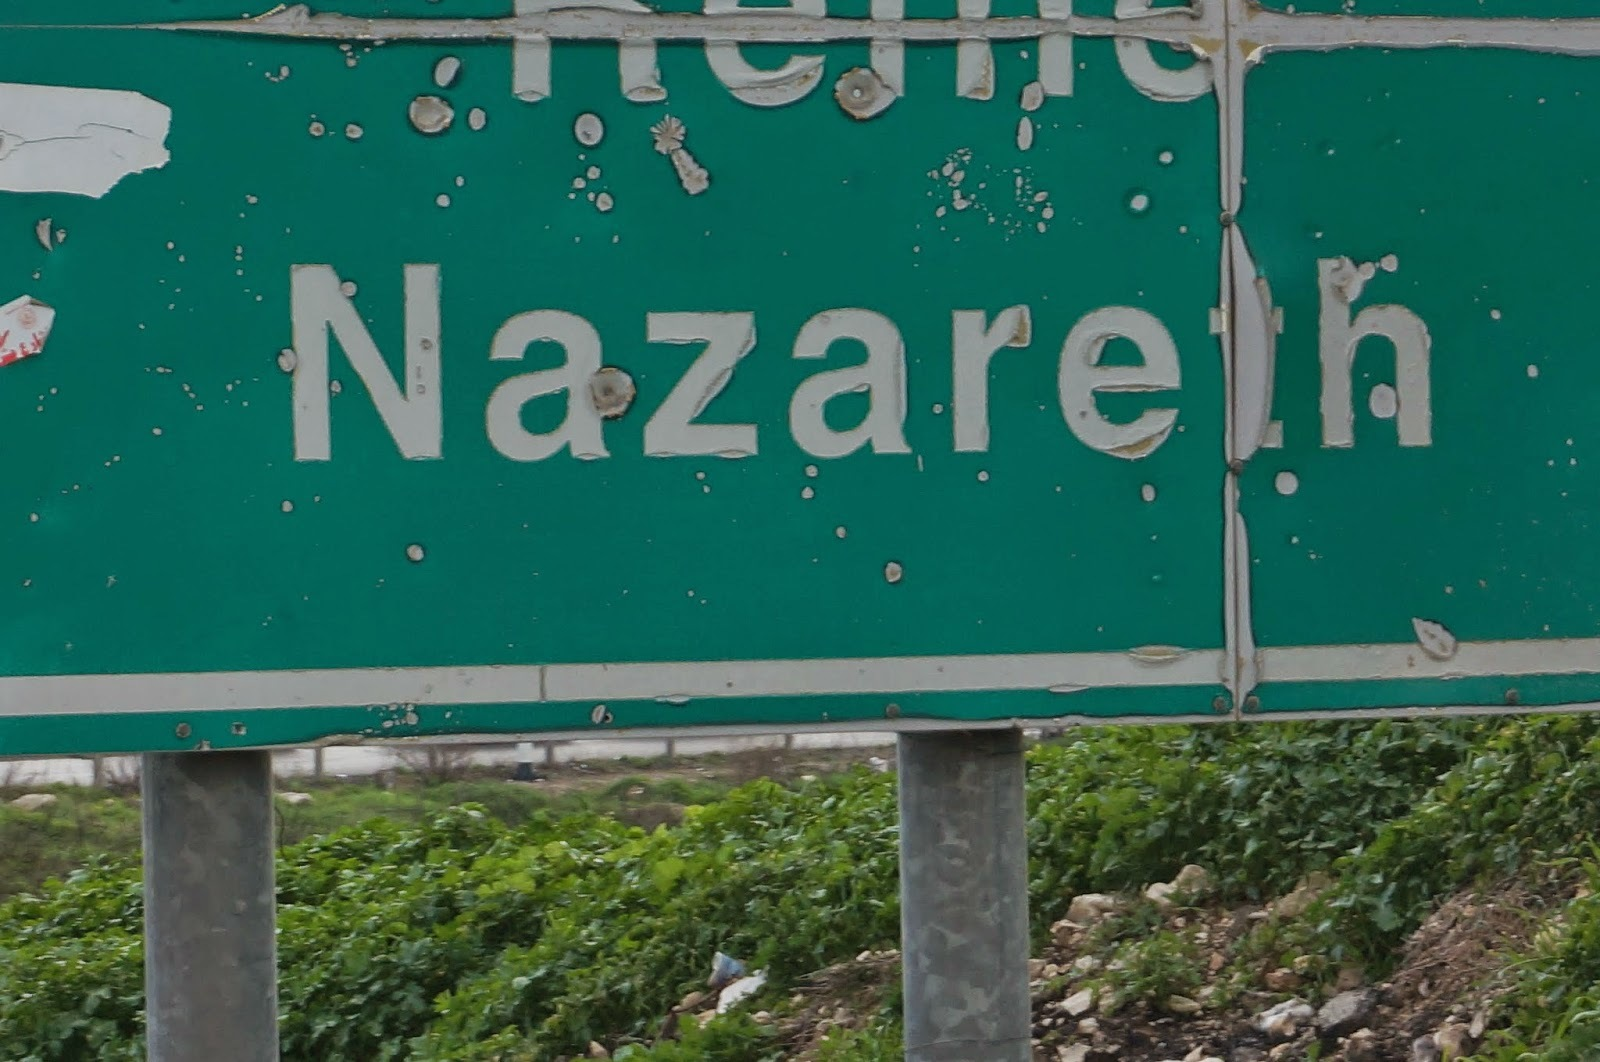 Can Anything Good Come From Nazareth?